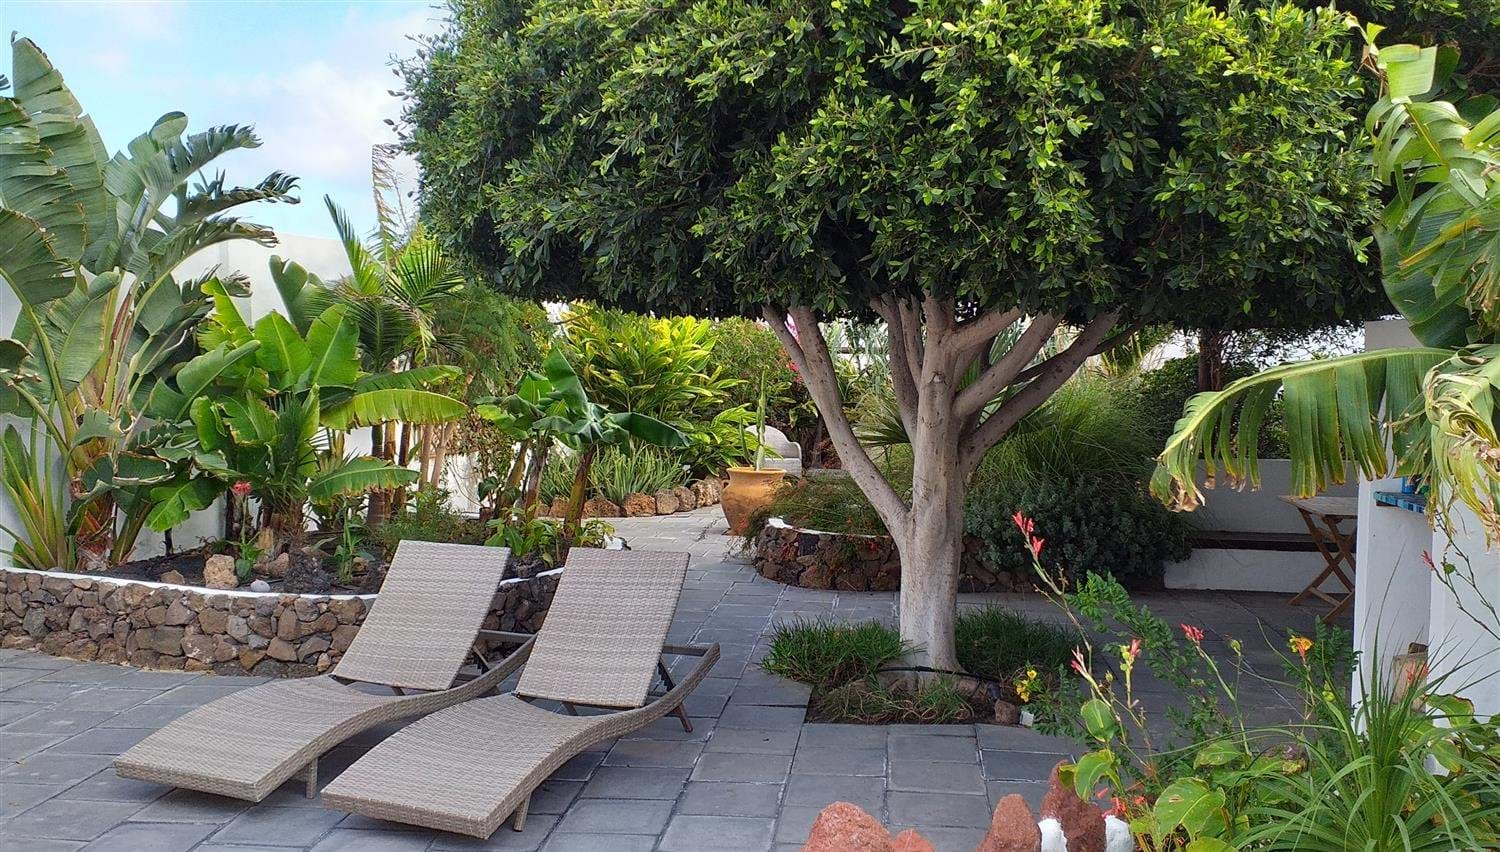 Sun loungers under a clipped Bay Tree at Finca Botanico in Lanzarote